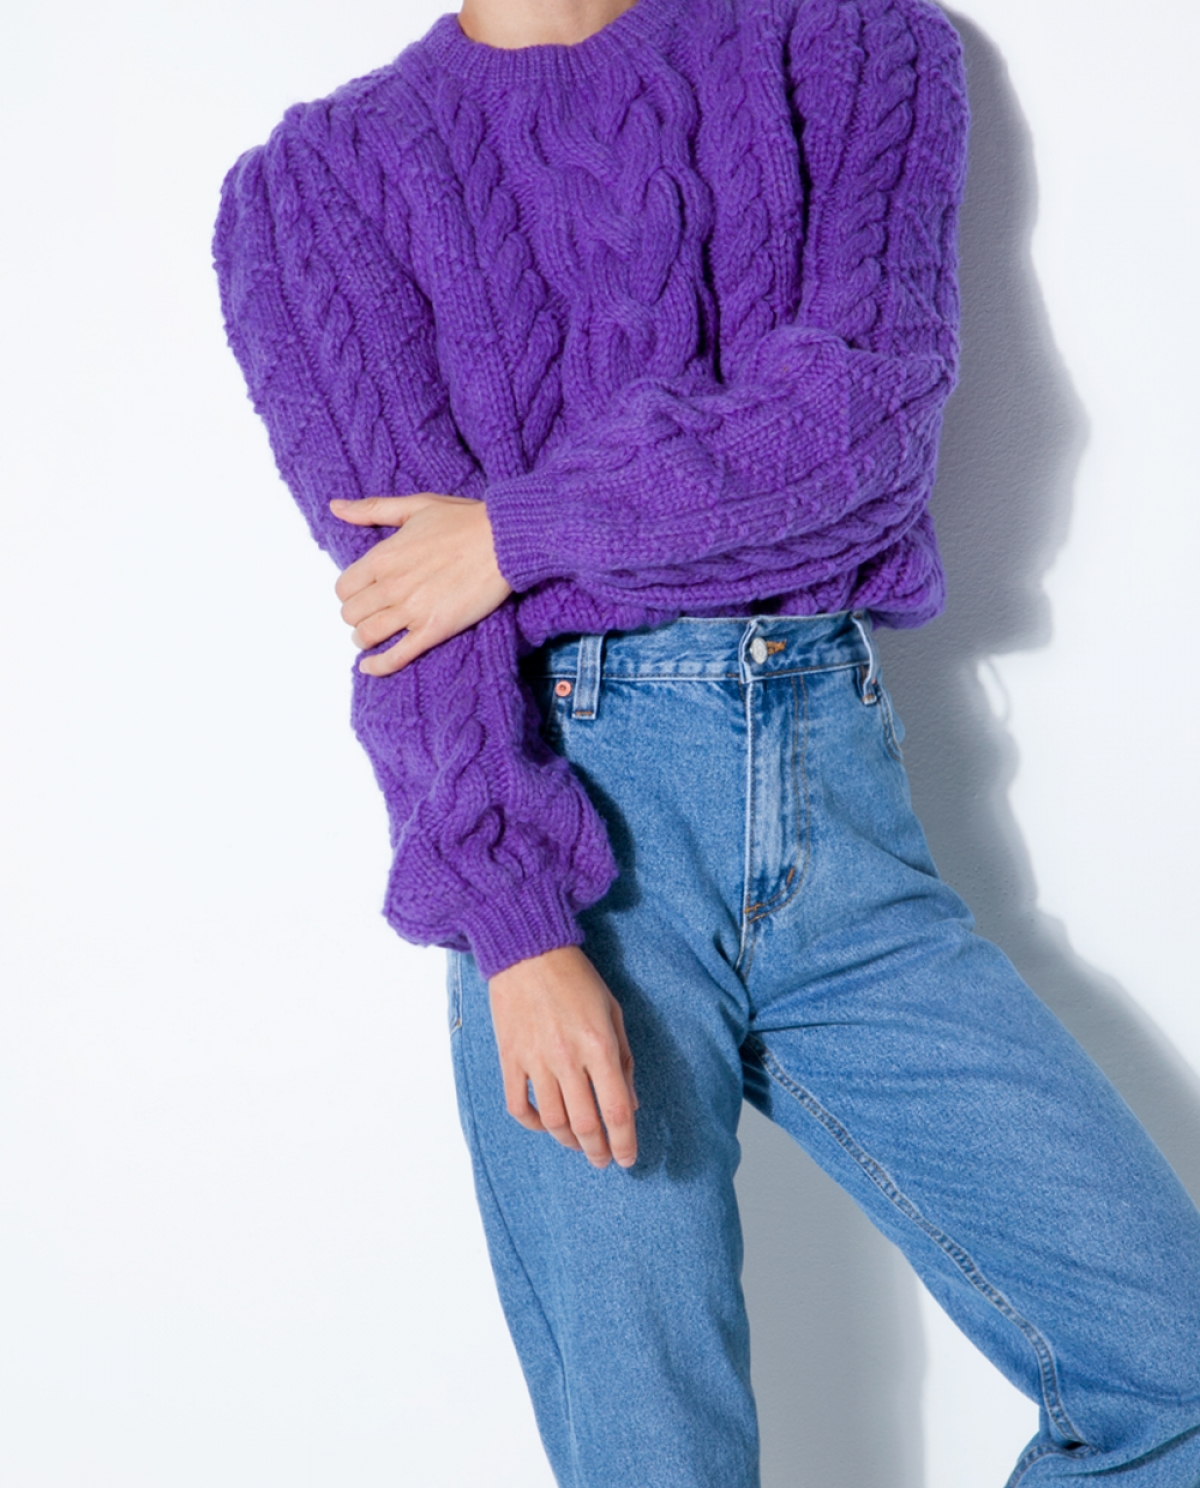 Purple Cable-knit Wool Sweater - Fashionnoiz